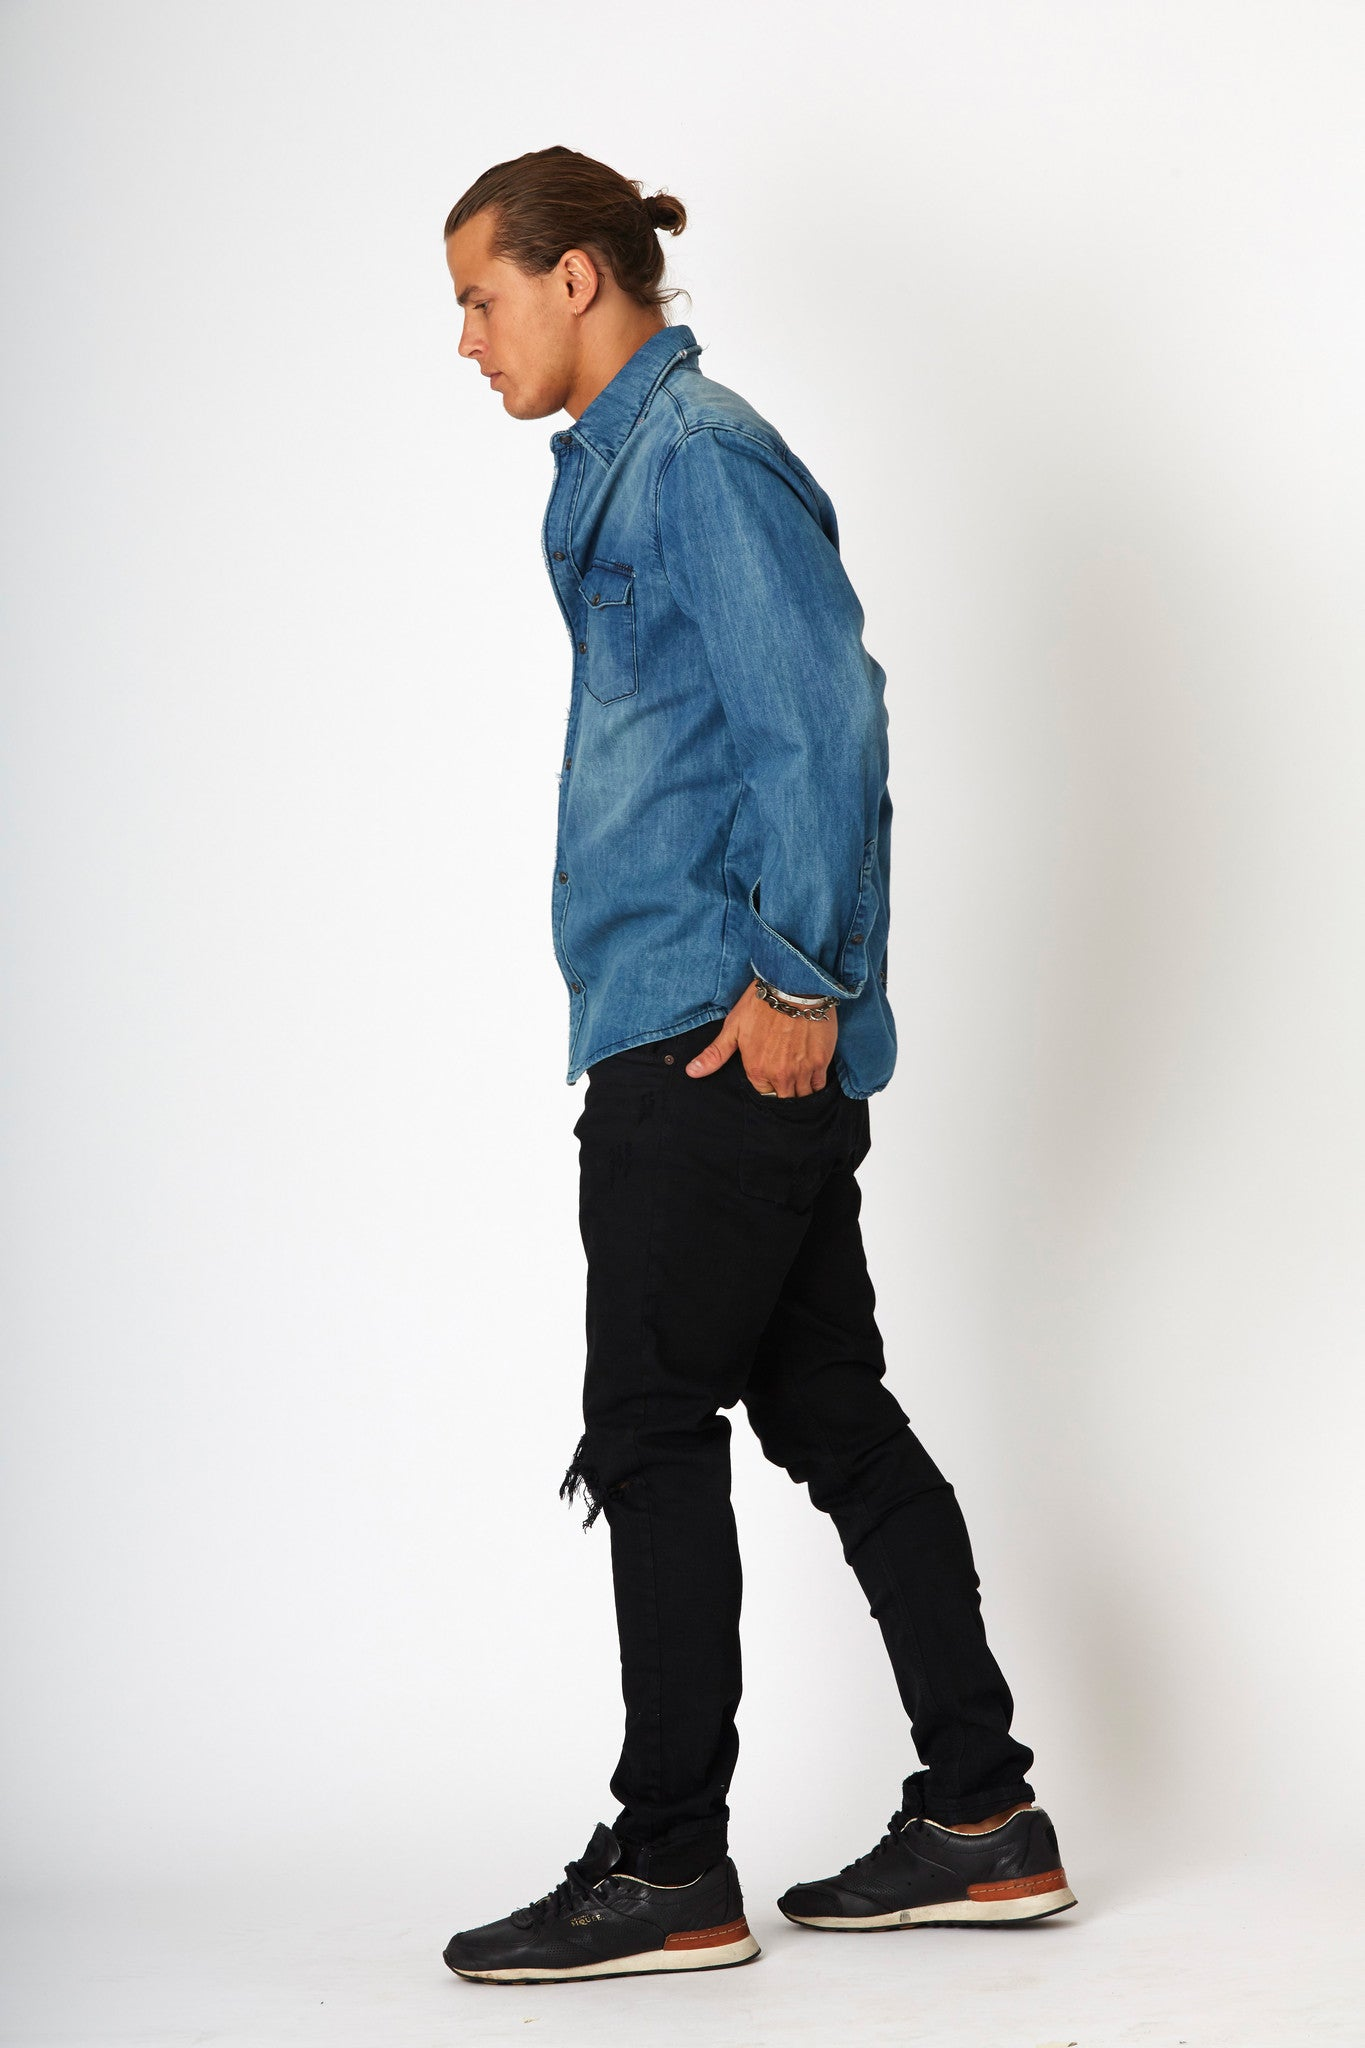 #2A18 Stretch Slim Jet Black - denimcolab